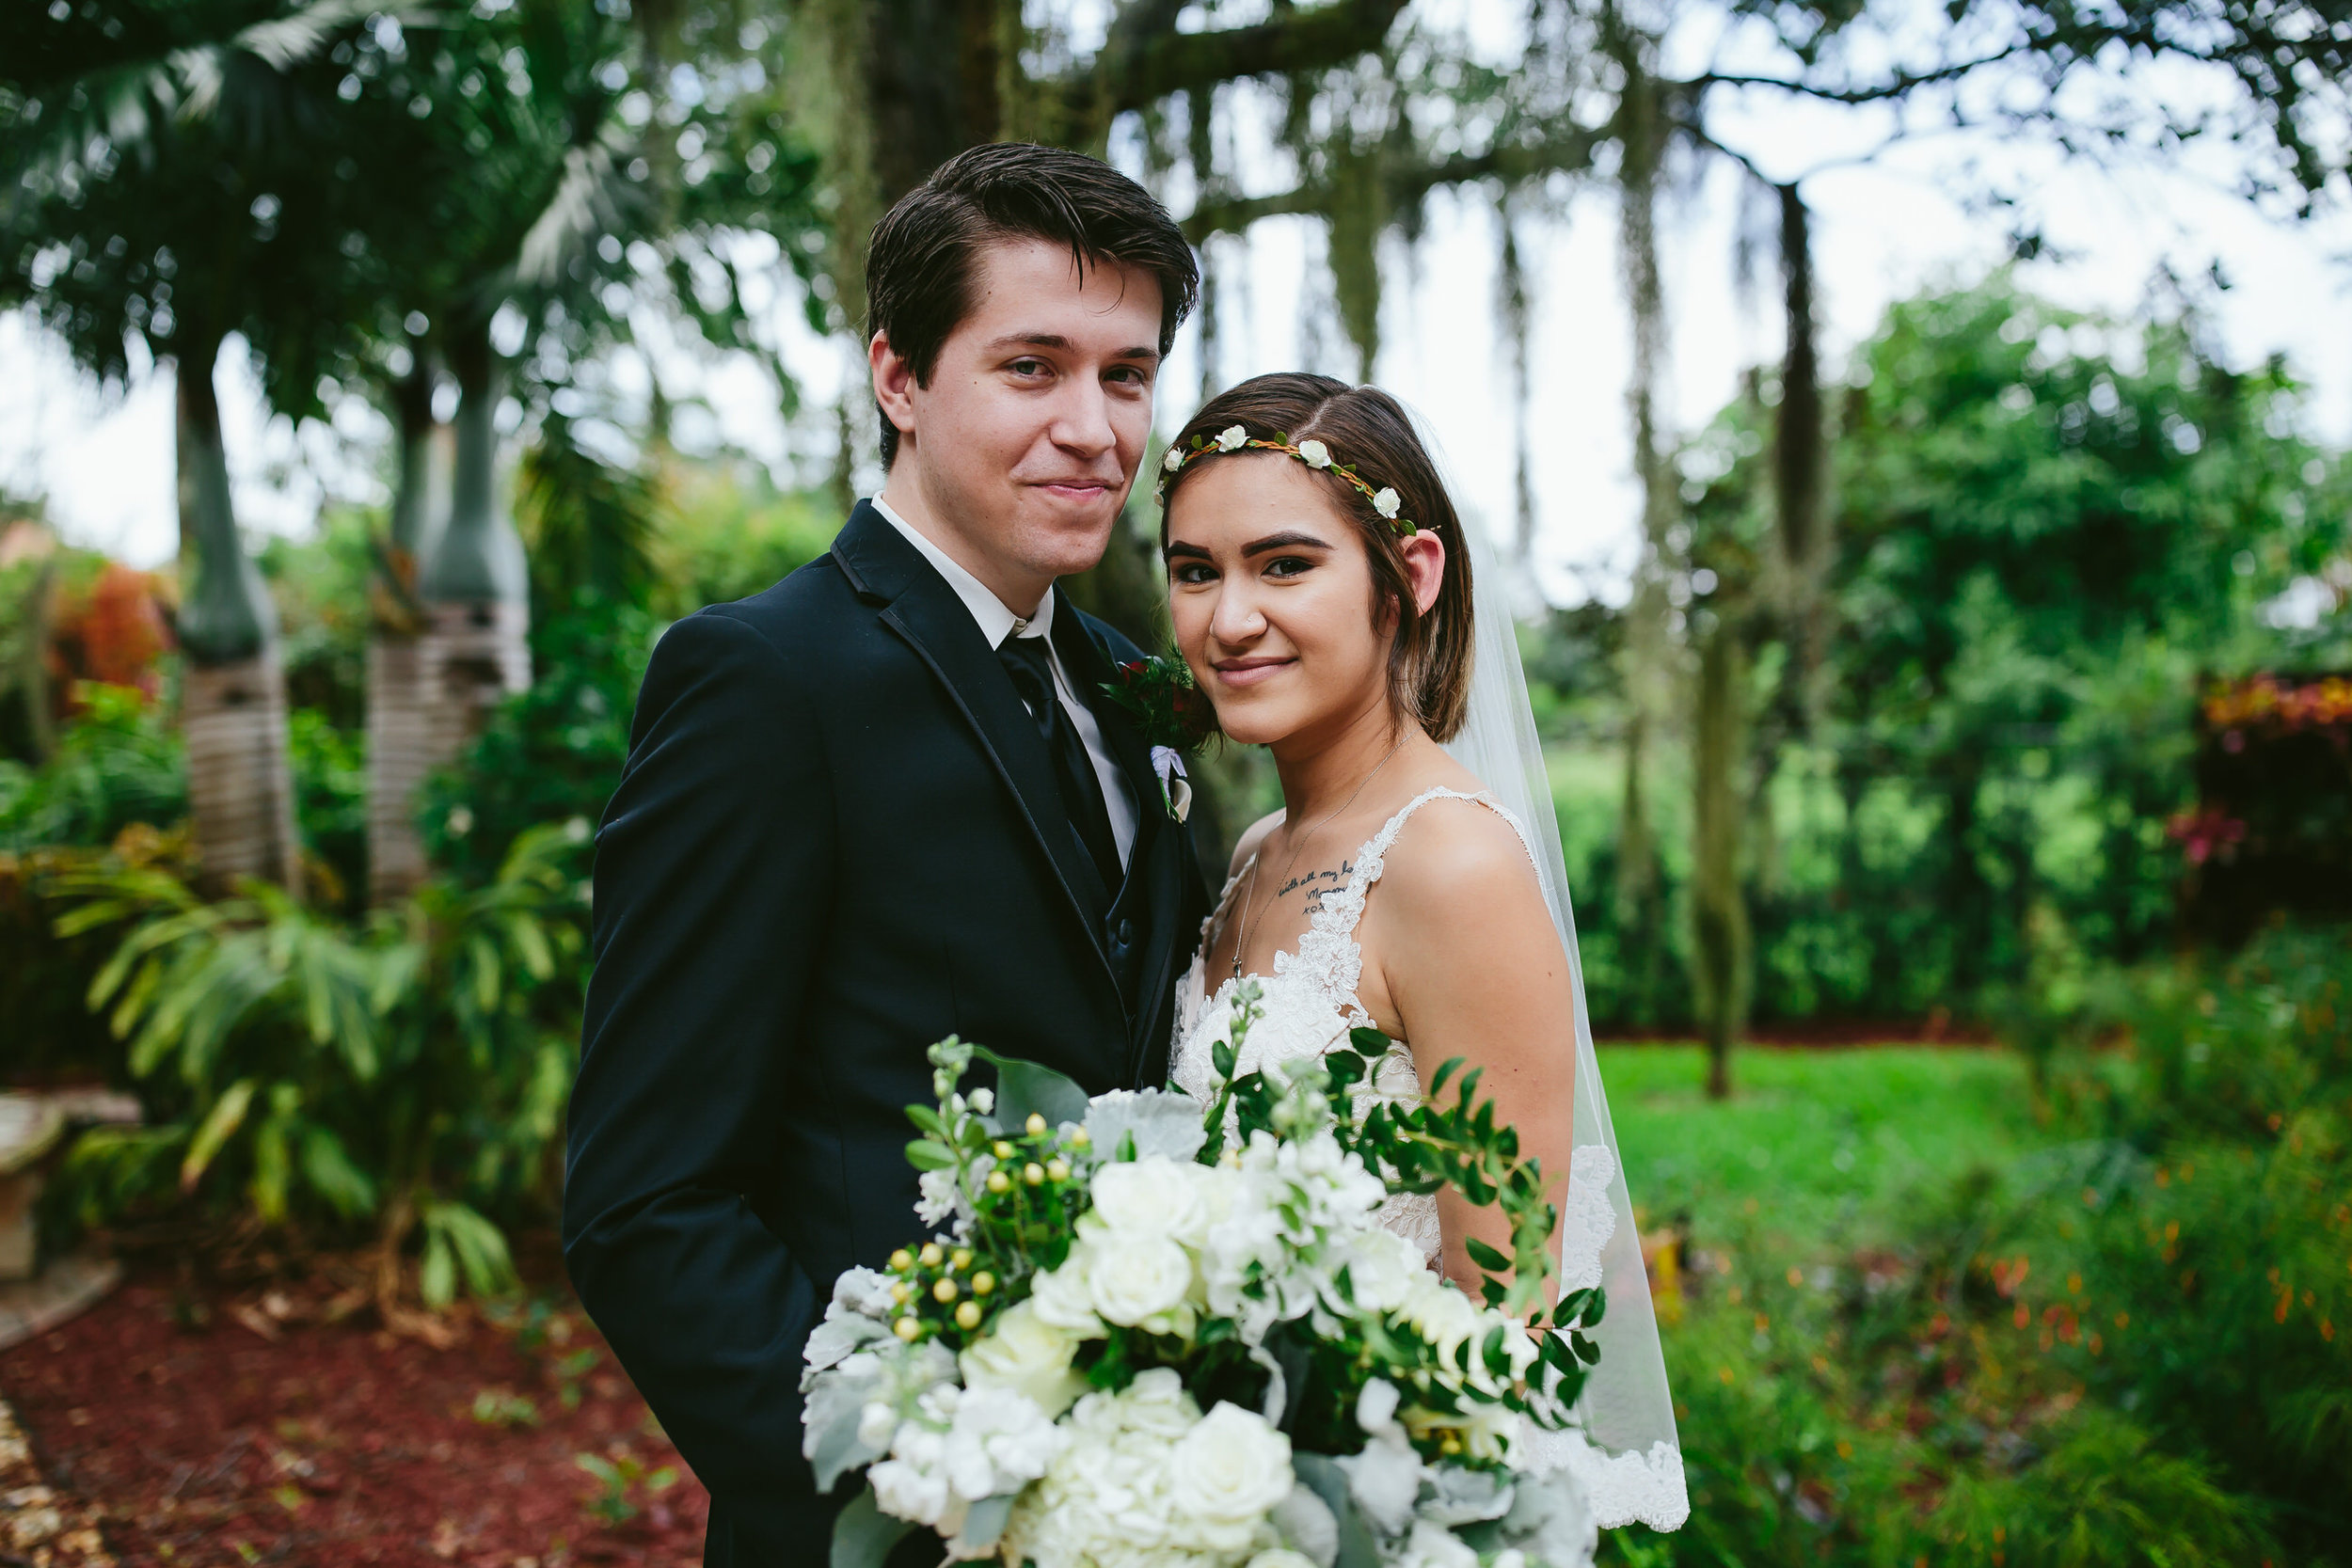 bride_and_groom_portrait_tiny_house_photo_backyard_southwest_ranches_estate.jpg